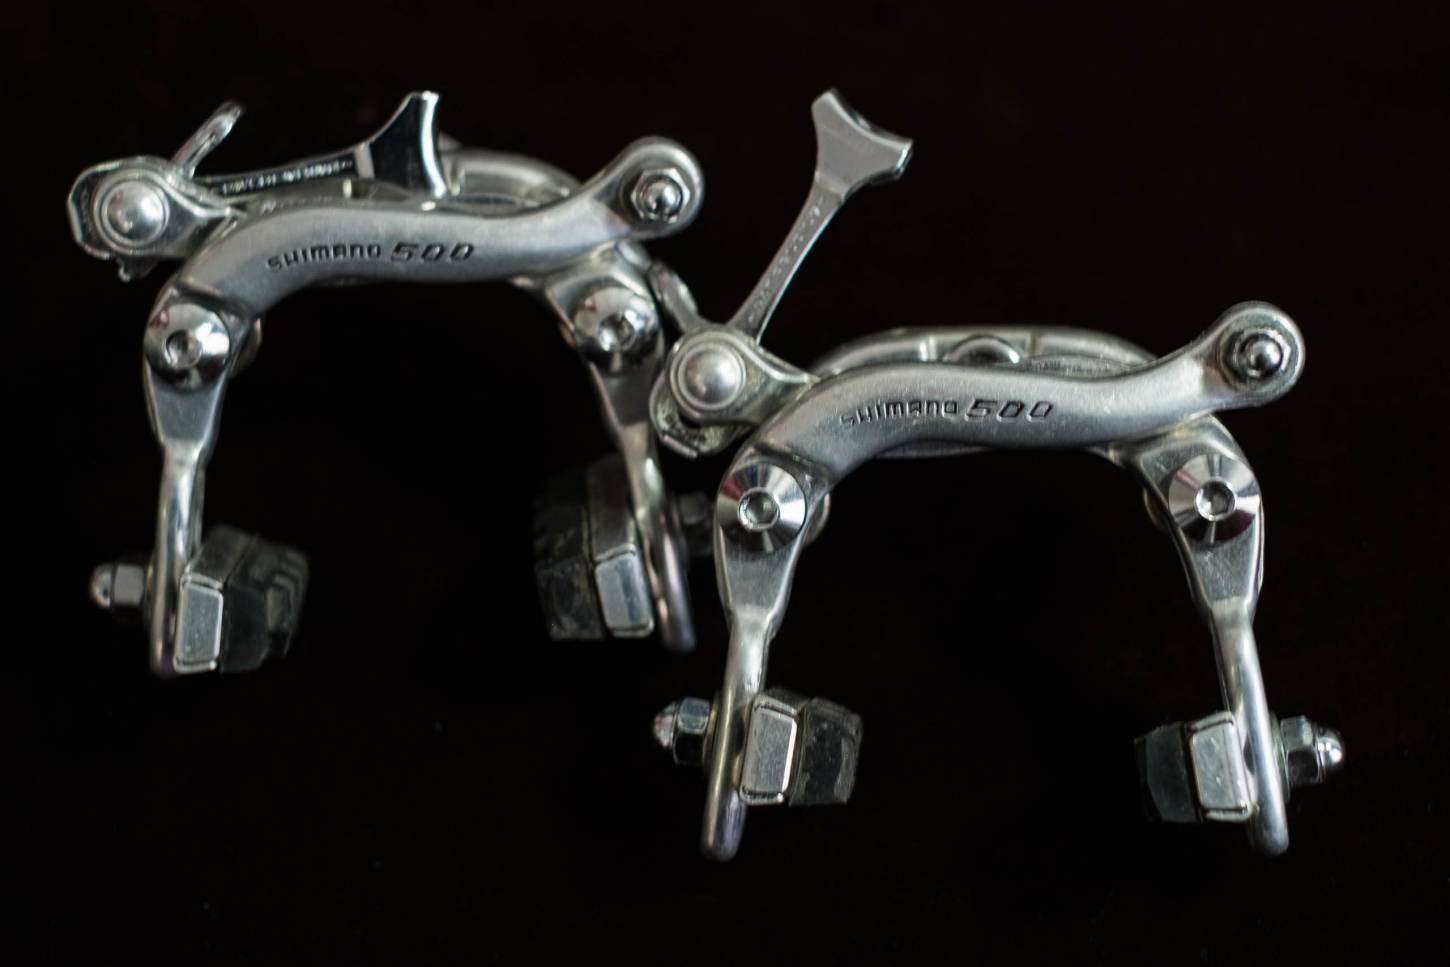 Shimano 500 mid-pull brake set + brake lever set 22.2 mm + rubber grips vintage road bike